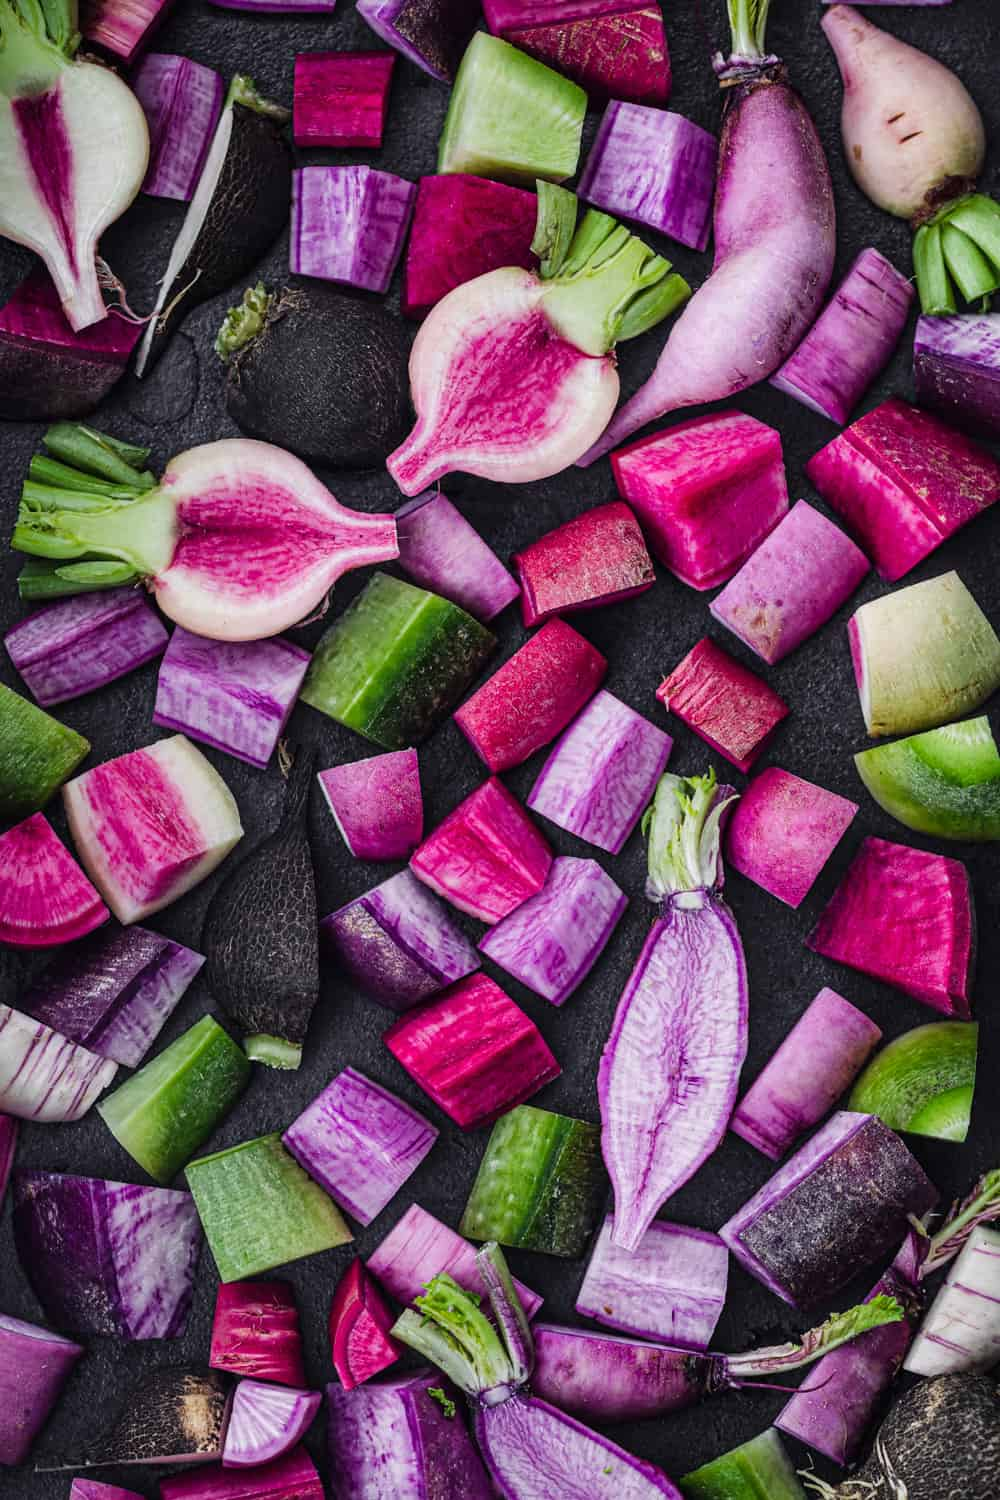 vibrantly colorful and raw radishes cut into bite size pieces on a roasting pan; there's pink, purple, green and black radishes; overhead shot